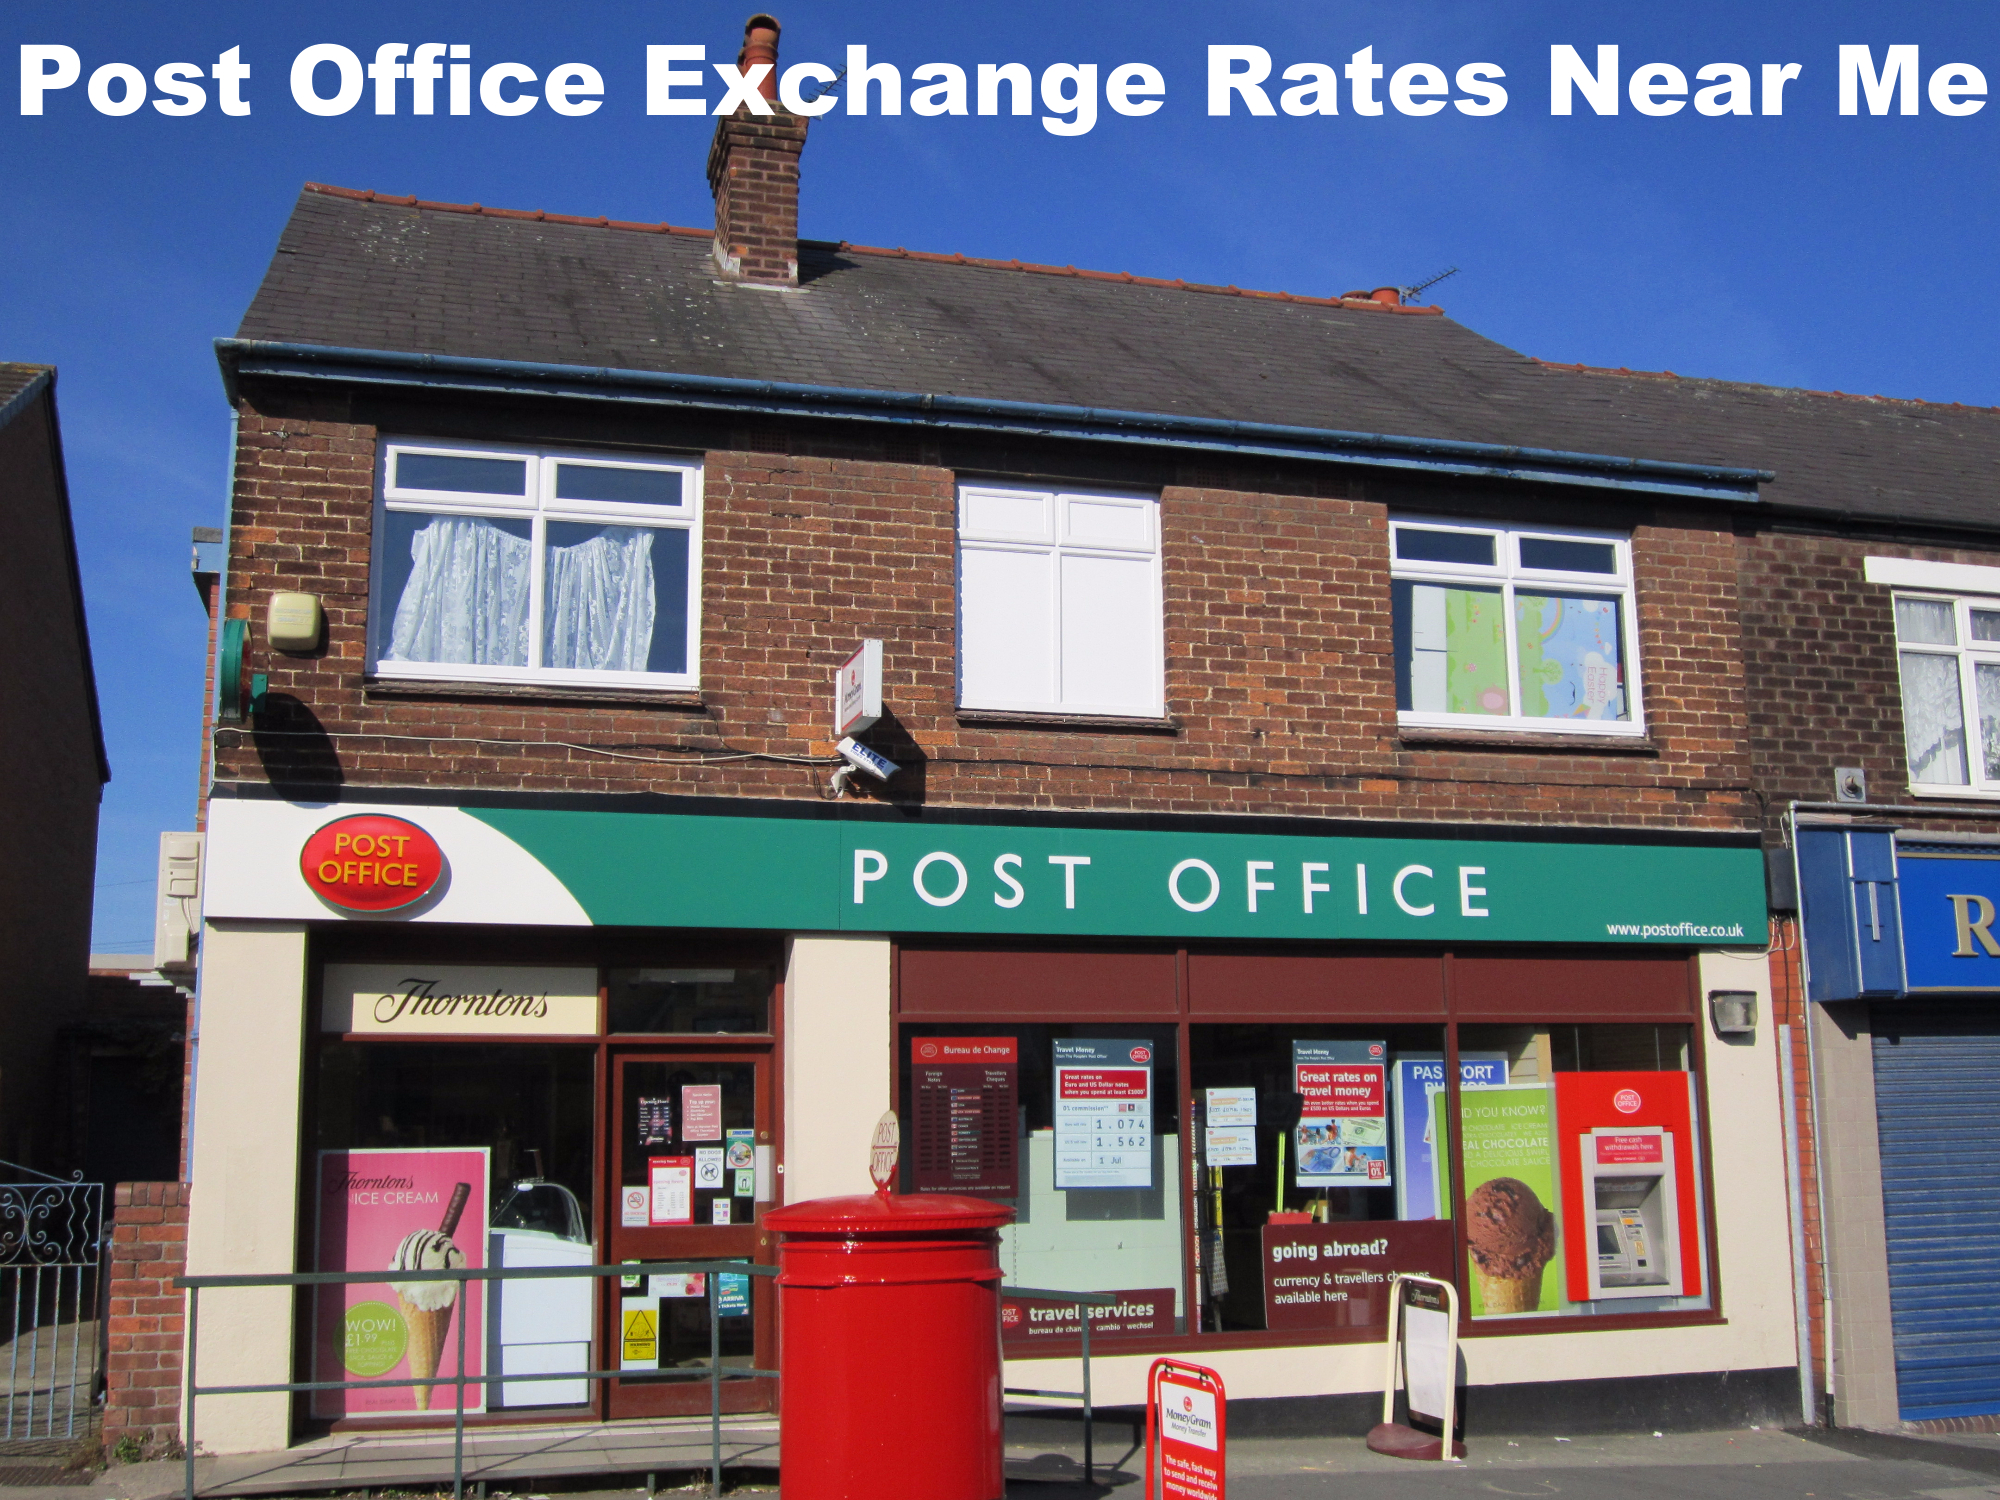 Currency Exchange Rates Neat Me Sheffield